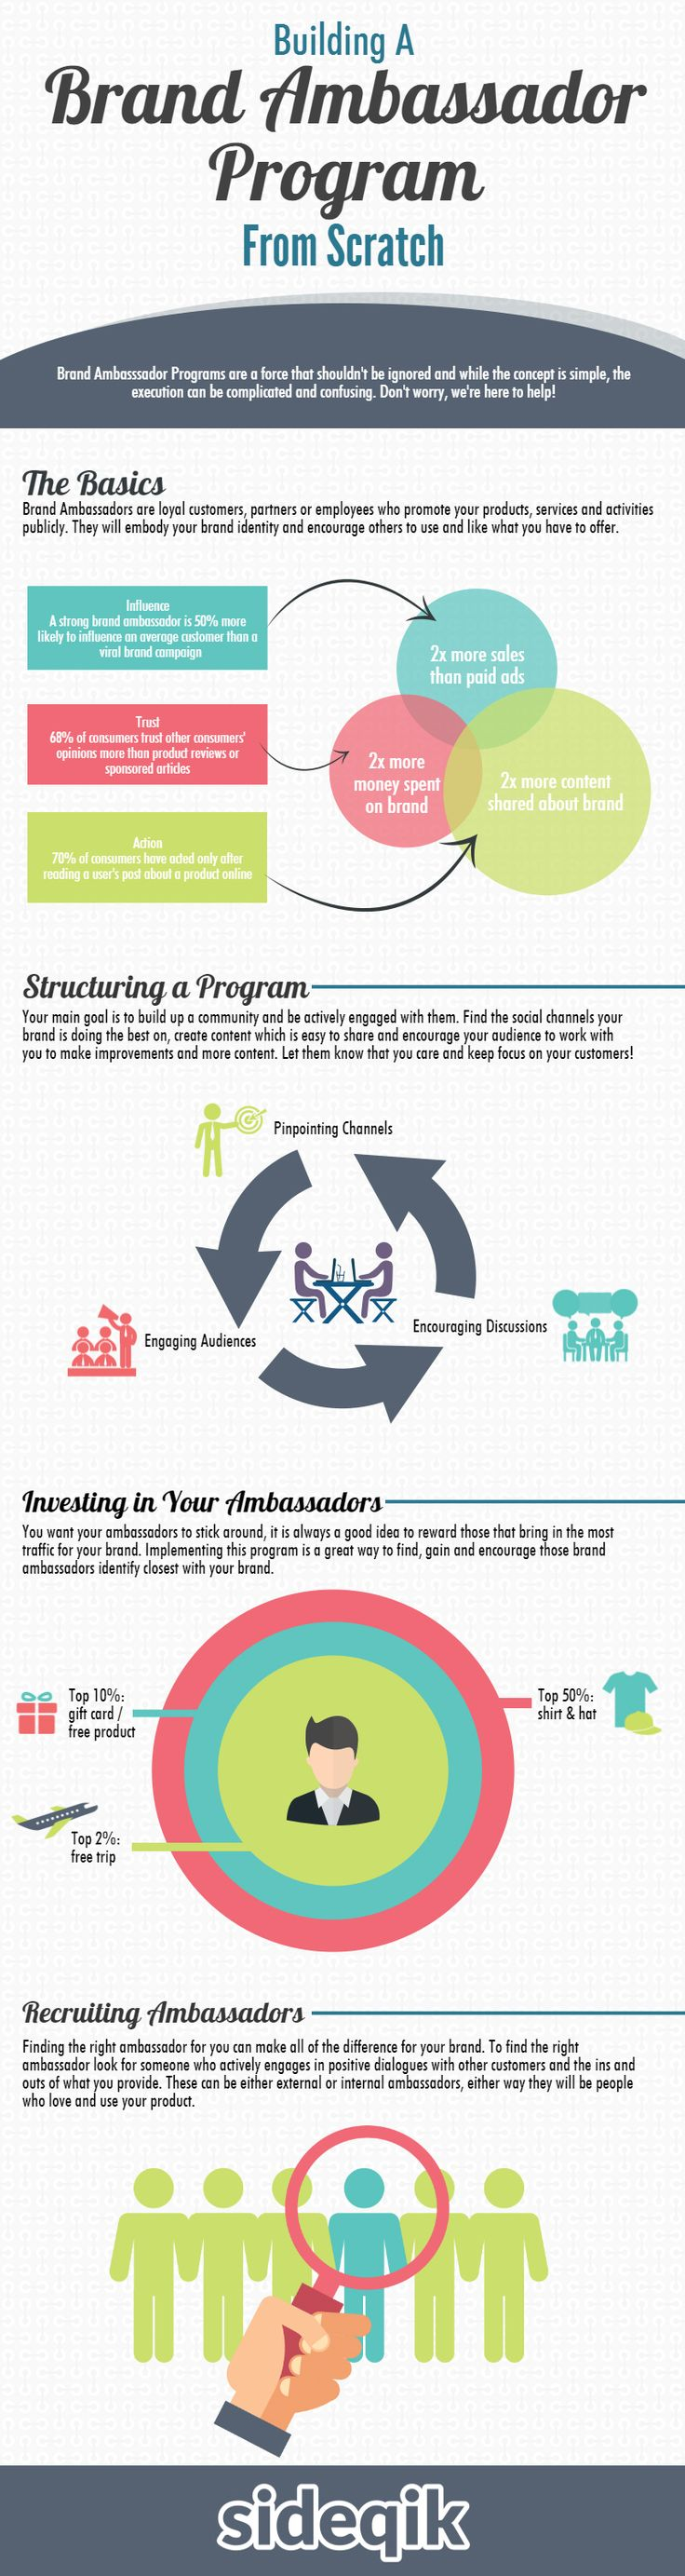 Building a Brand Ambassador Program From Scratch (Infographic)